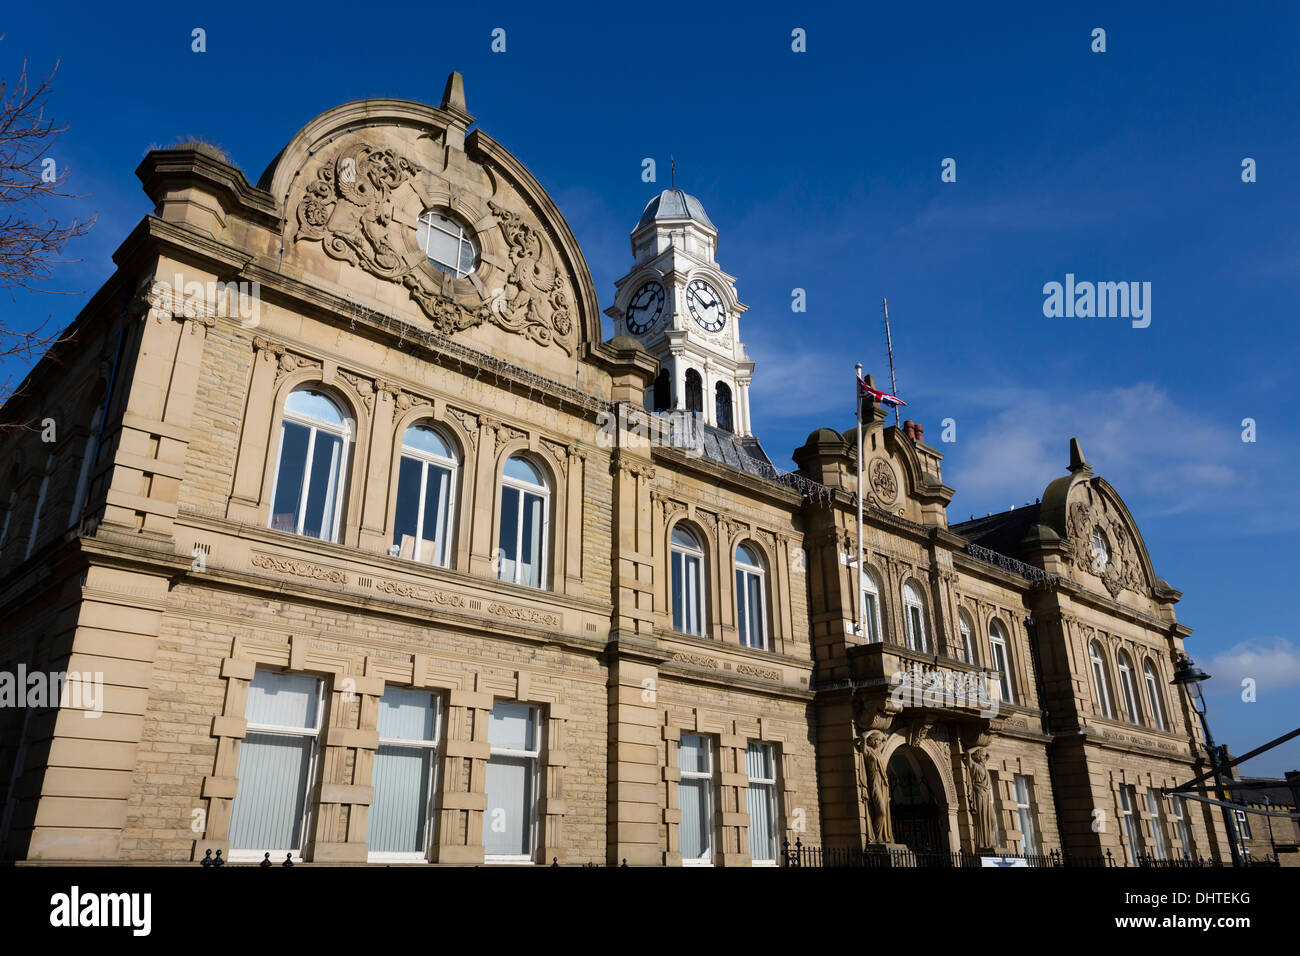 Ossett Town Hall was built in the French renaissance style between 1906-1908 at a cost of £22,000. - Stock Image